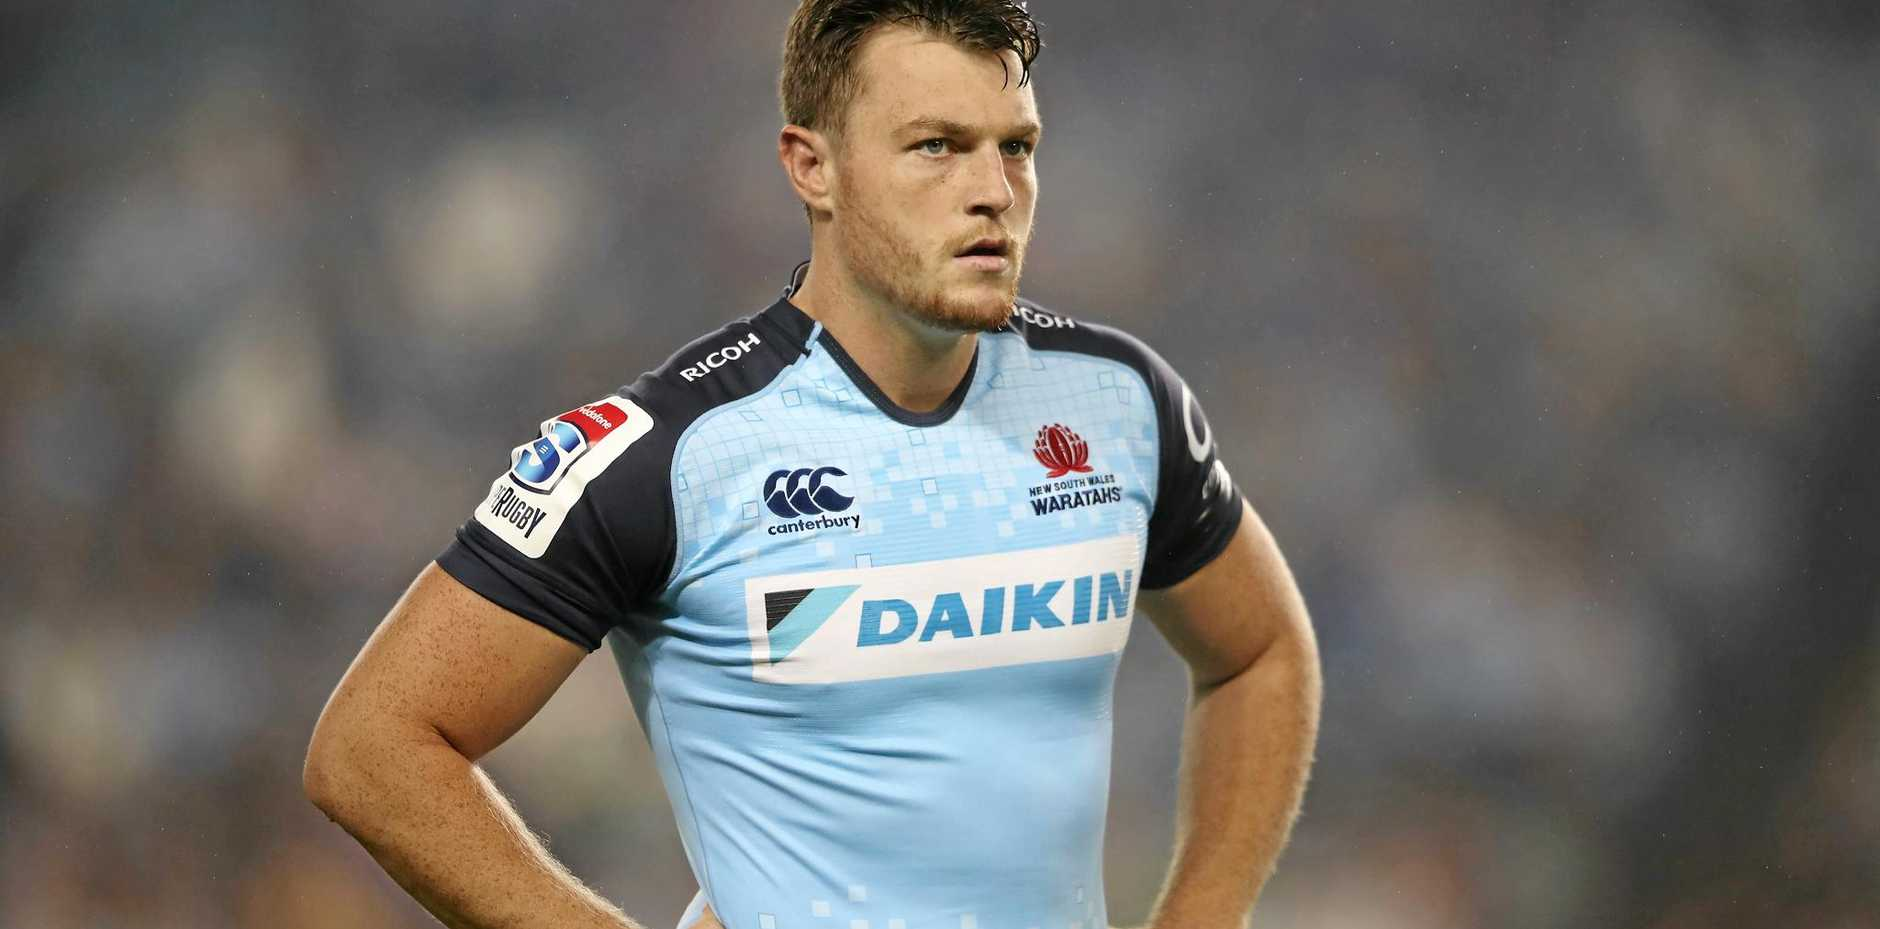 Jack Dempsey of the Waratahs.